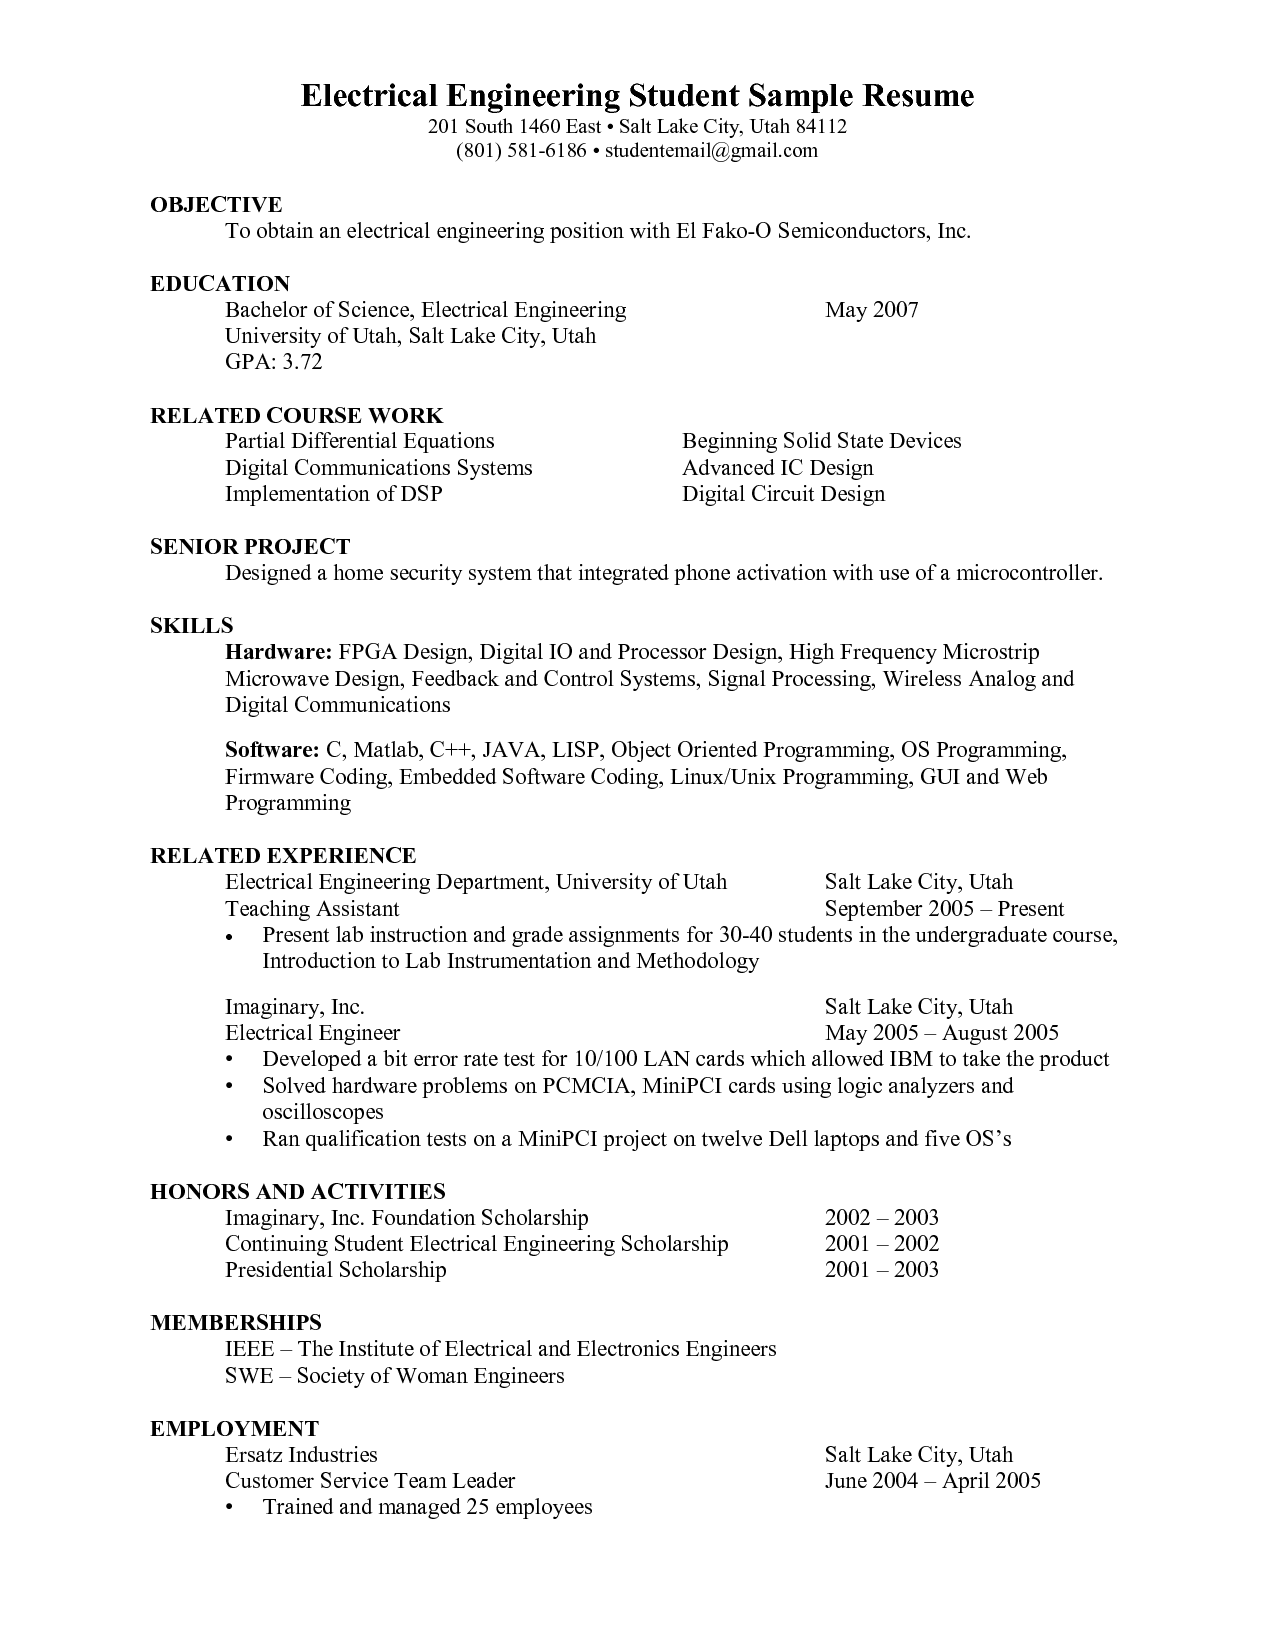 Example Of A Student Resume this examples student resume sample filipino we will give you a refence start on building resume you can optimized this example resume on creating resume Student Resume